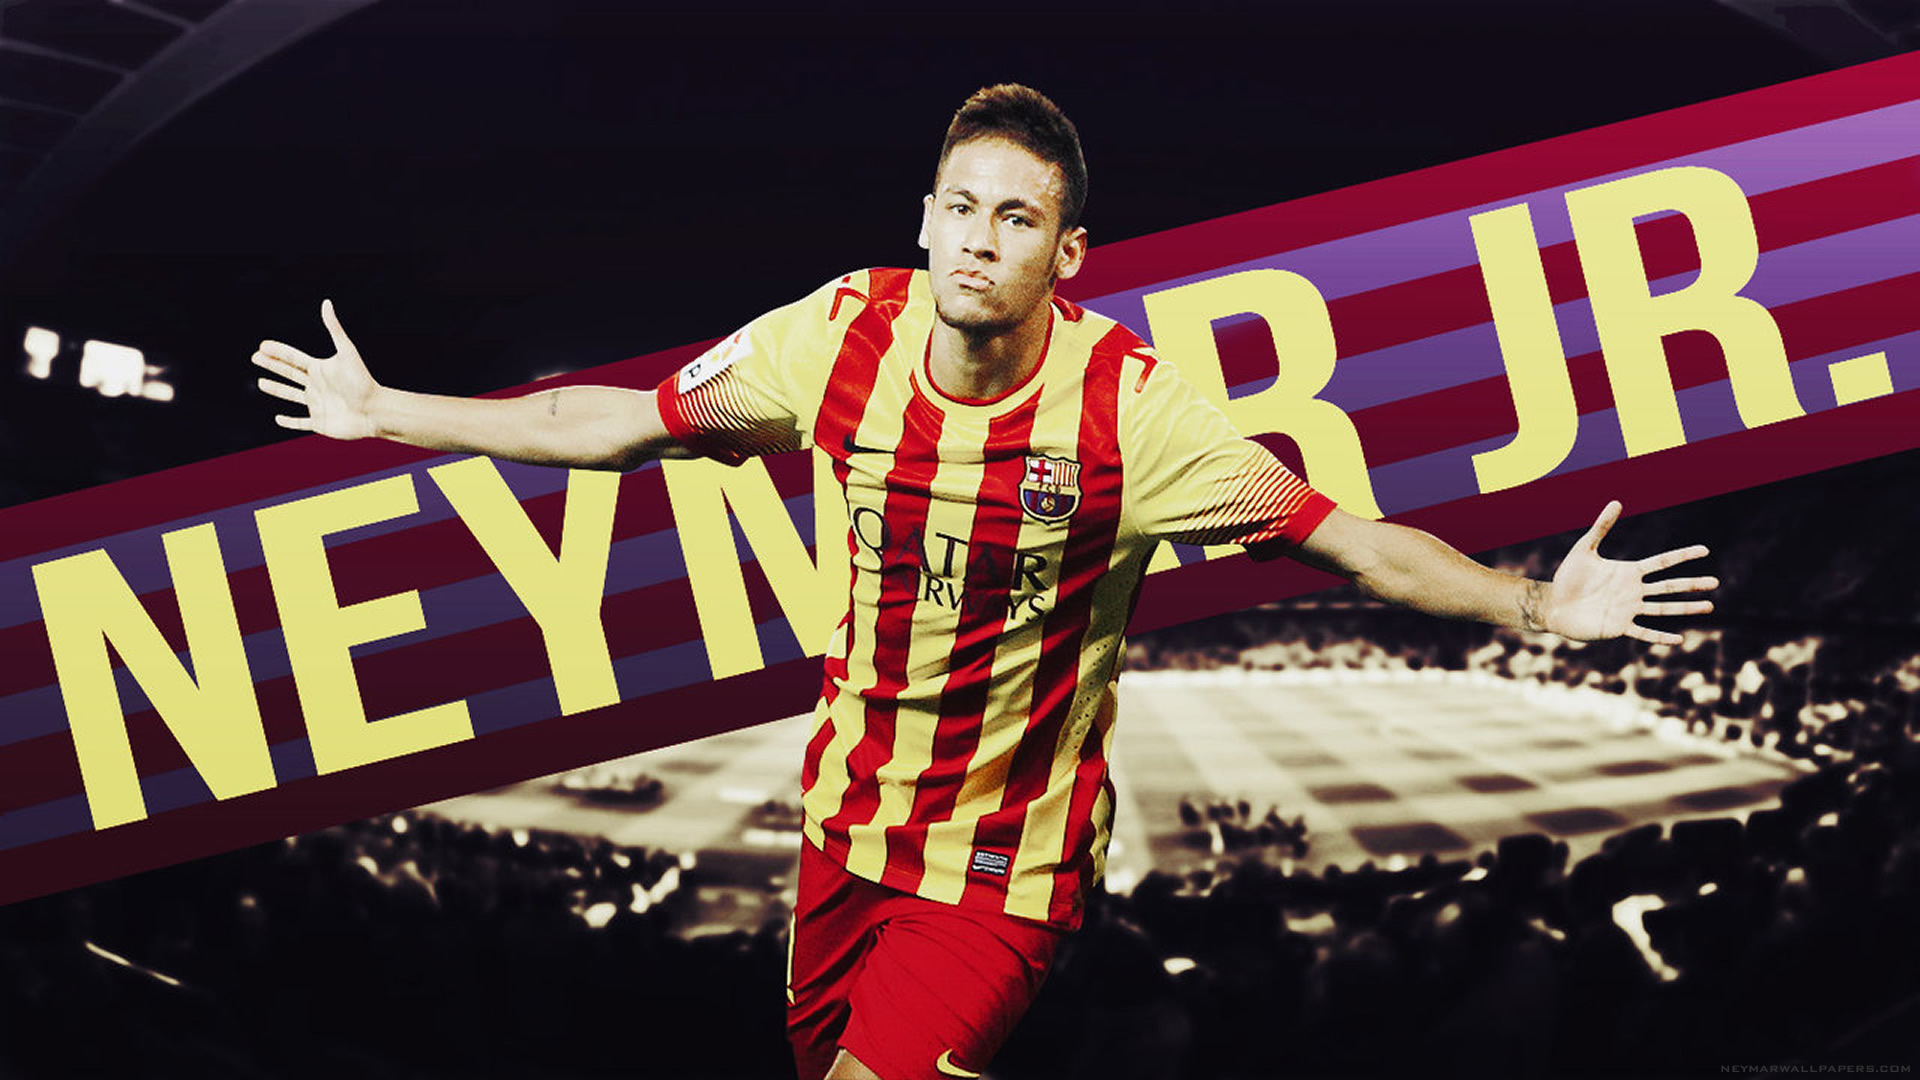 Neymar arms wide wallpaper